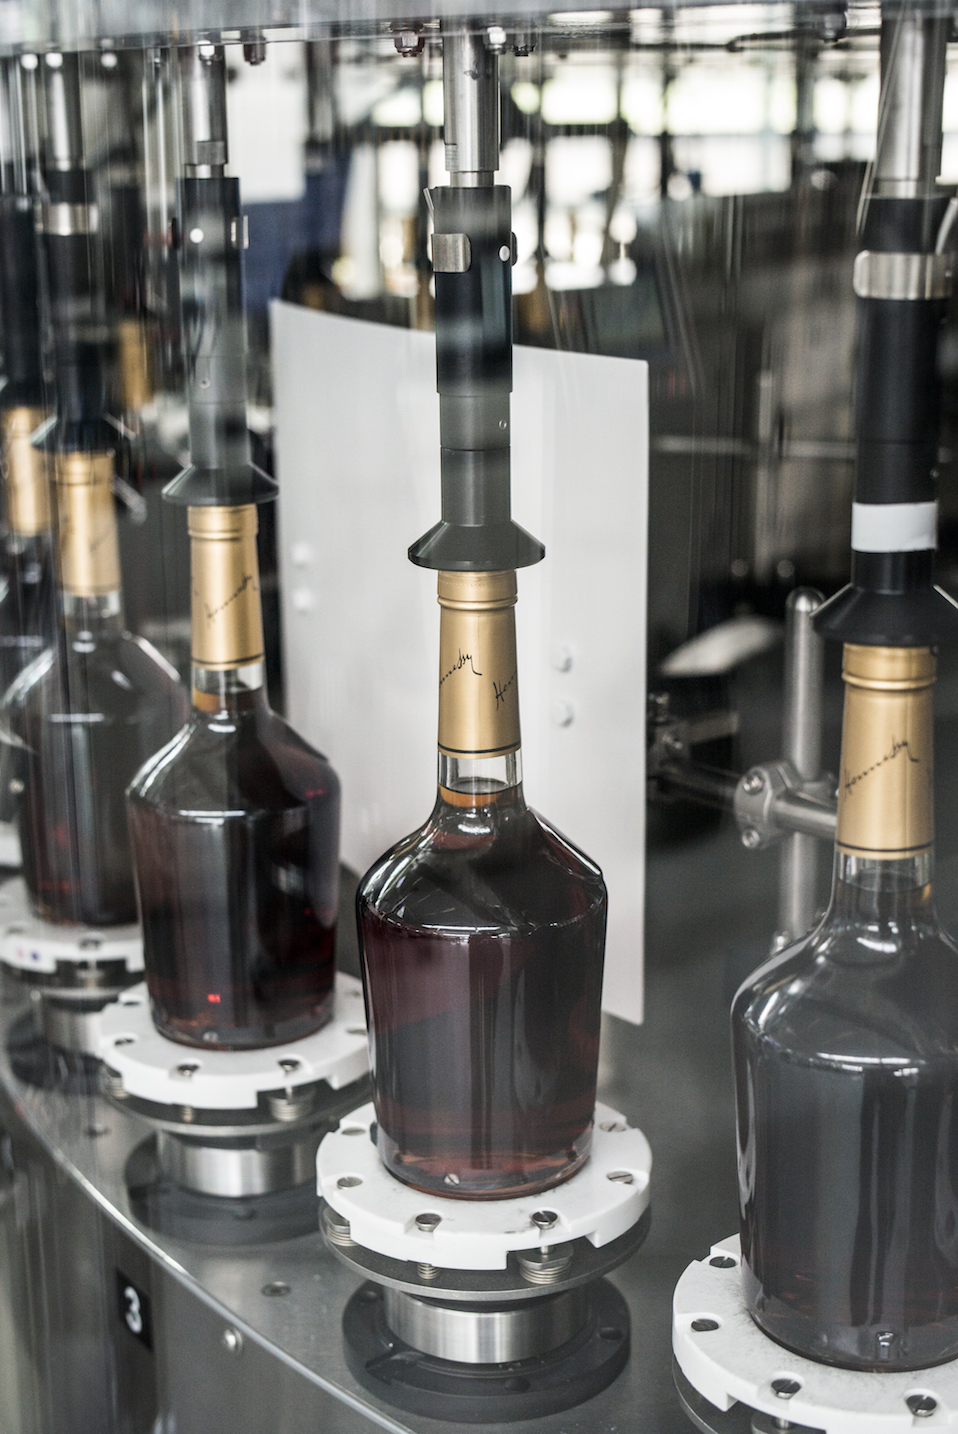 Hennessy's new Bottling Plant: The Grave for small Businesses?